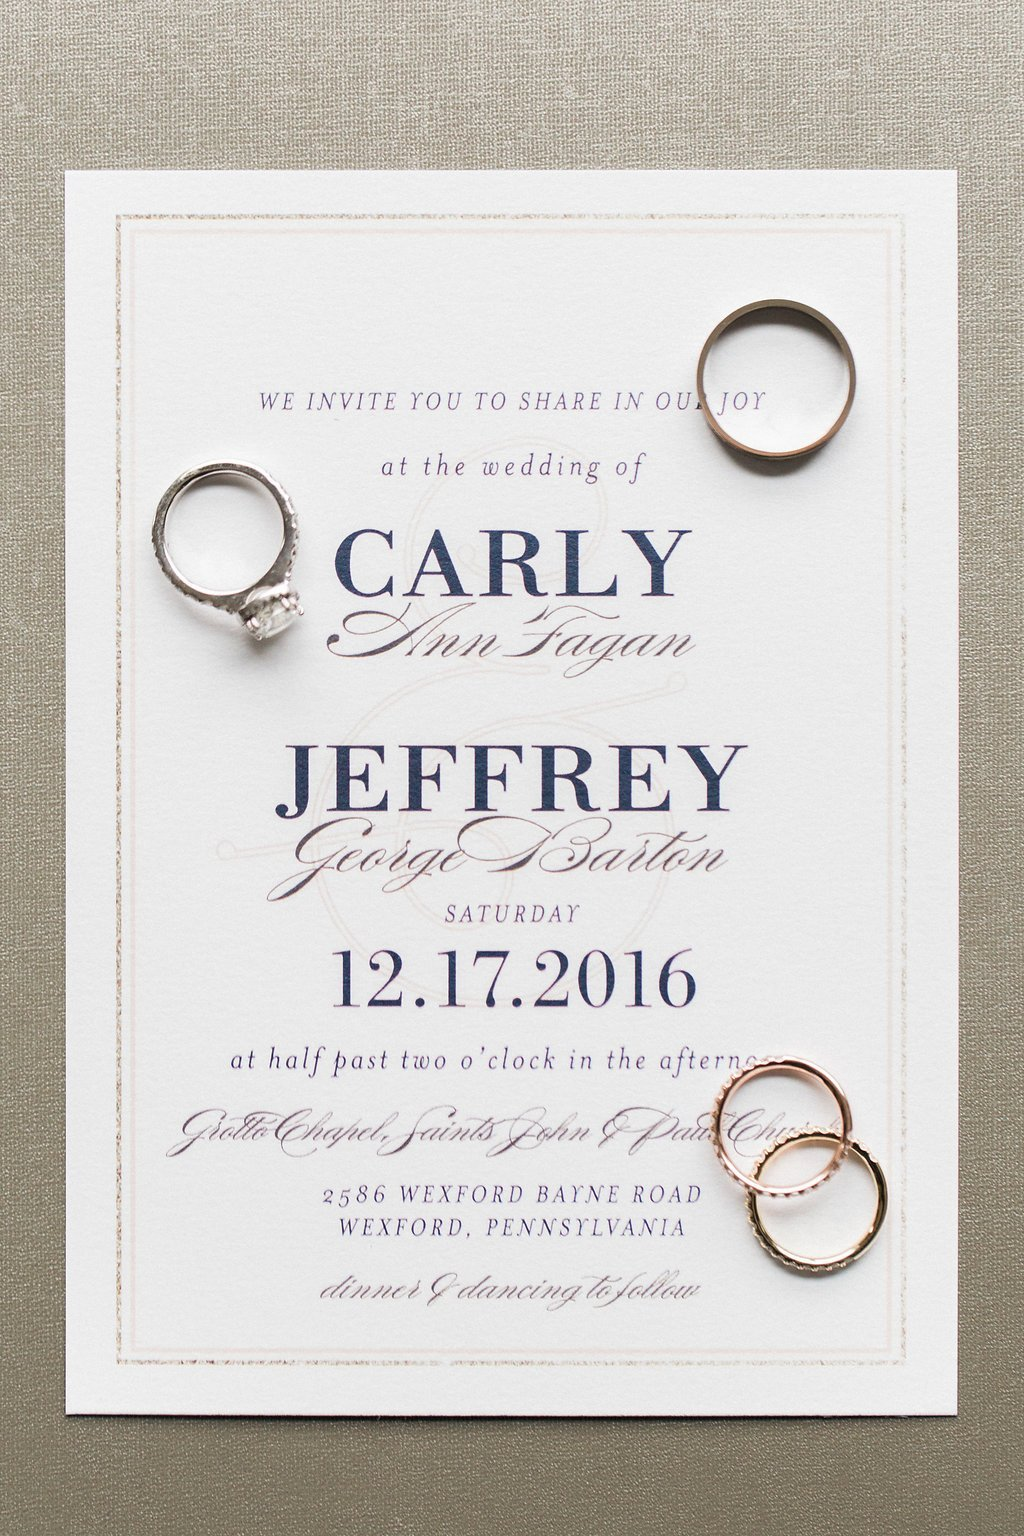 Photo of the wedding invitation and rings